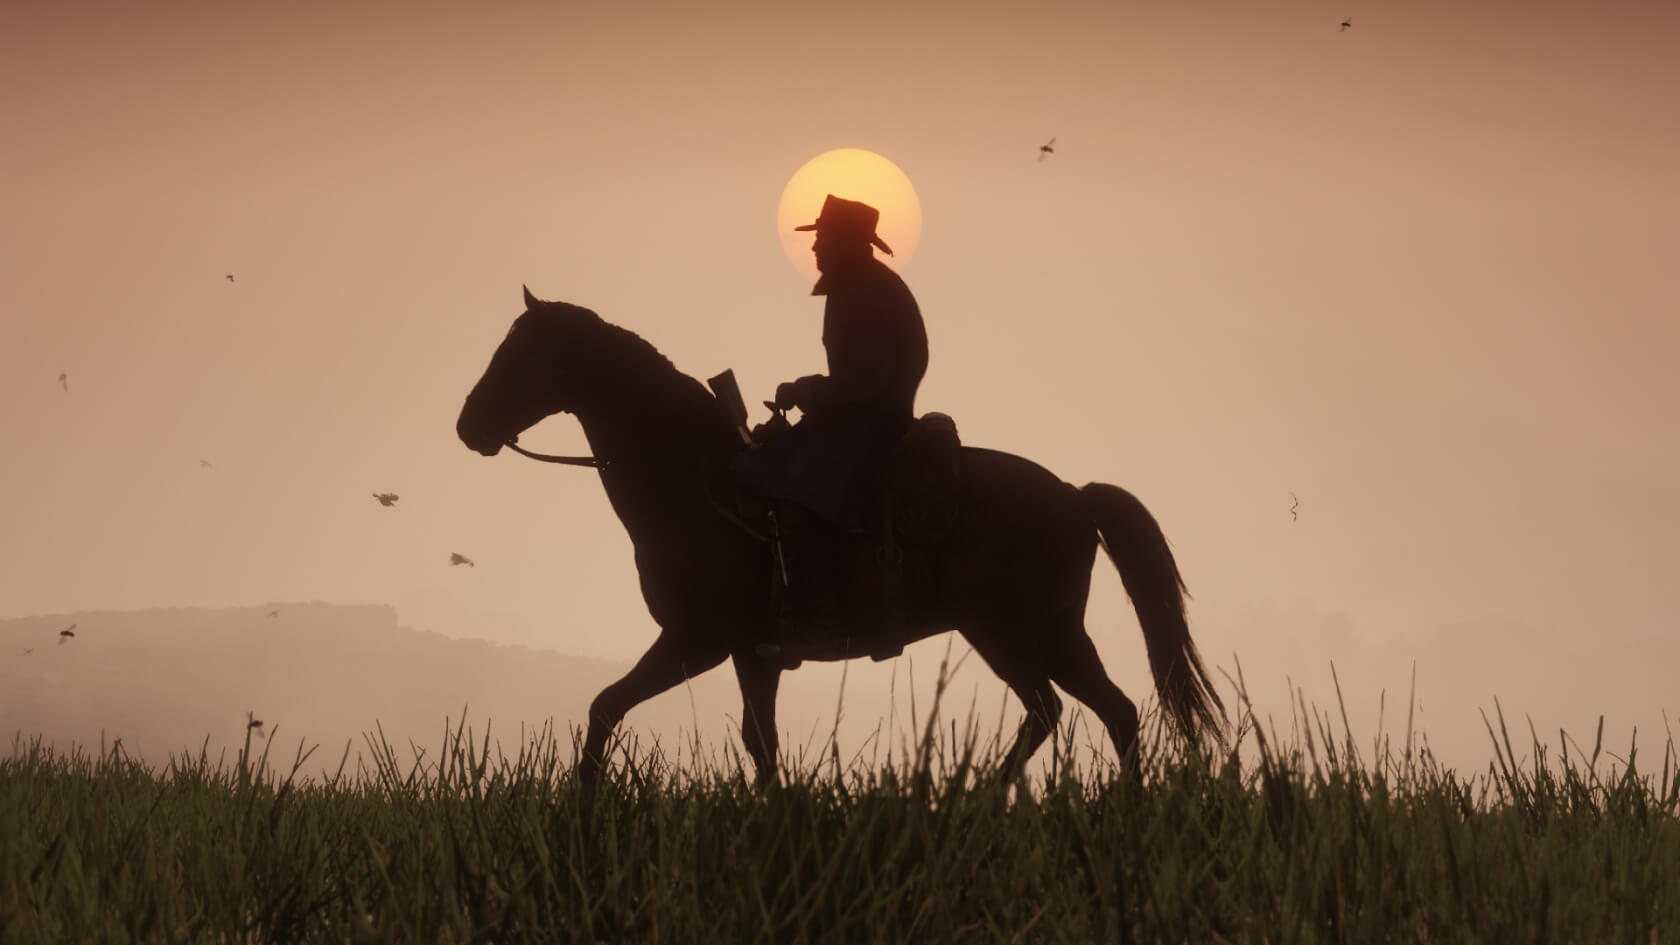 Rockstar confirms release date for Red Dead Redemption 2